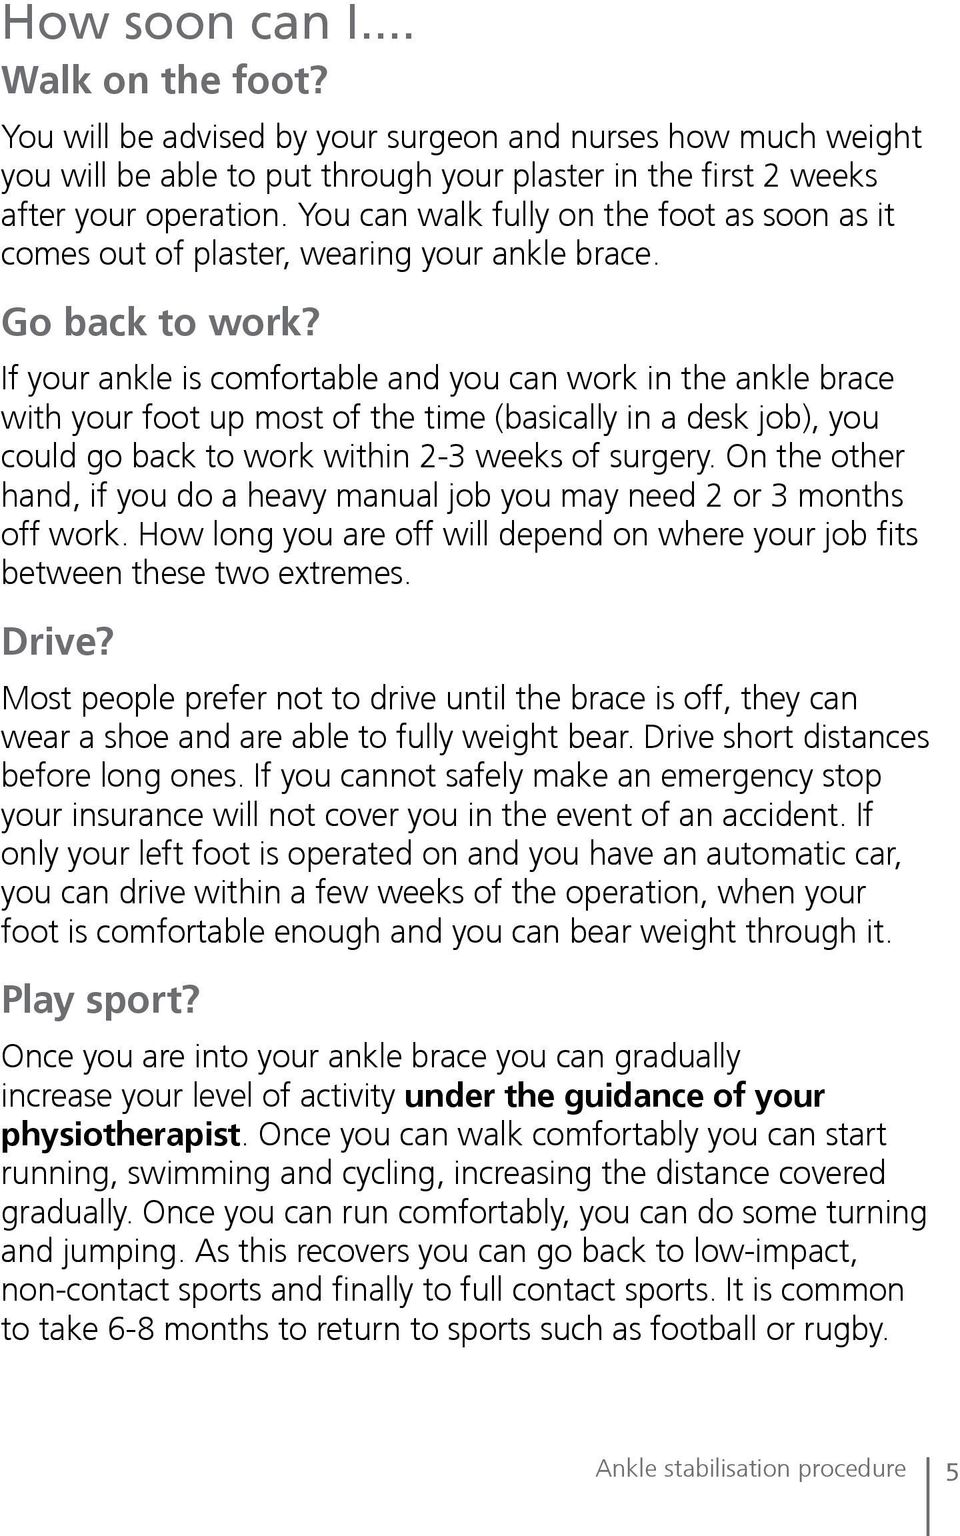 If your ankle is comfortable and you can work in the ankle brace with your foot up most of the time (basically in a desk job), you could go back to work within 2-3 weeks of surgery.